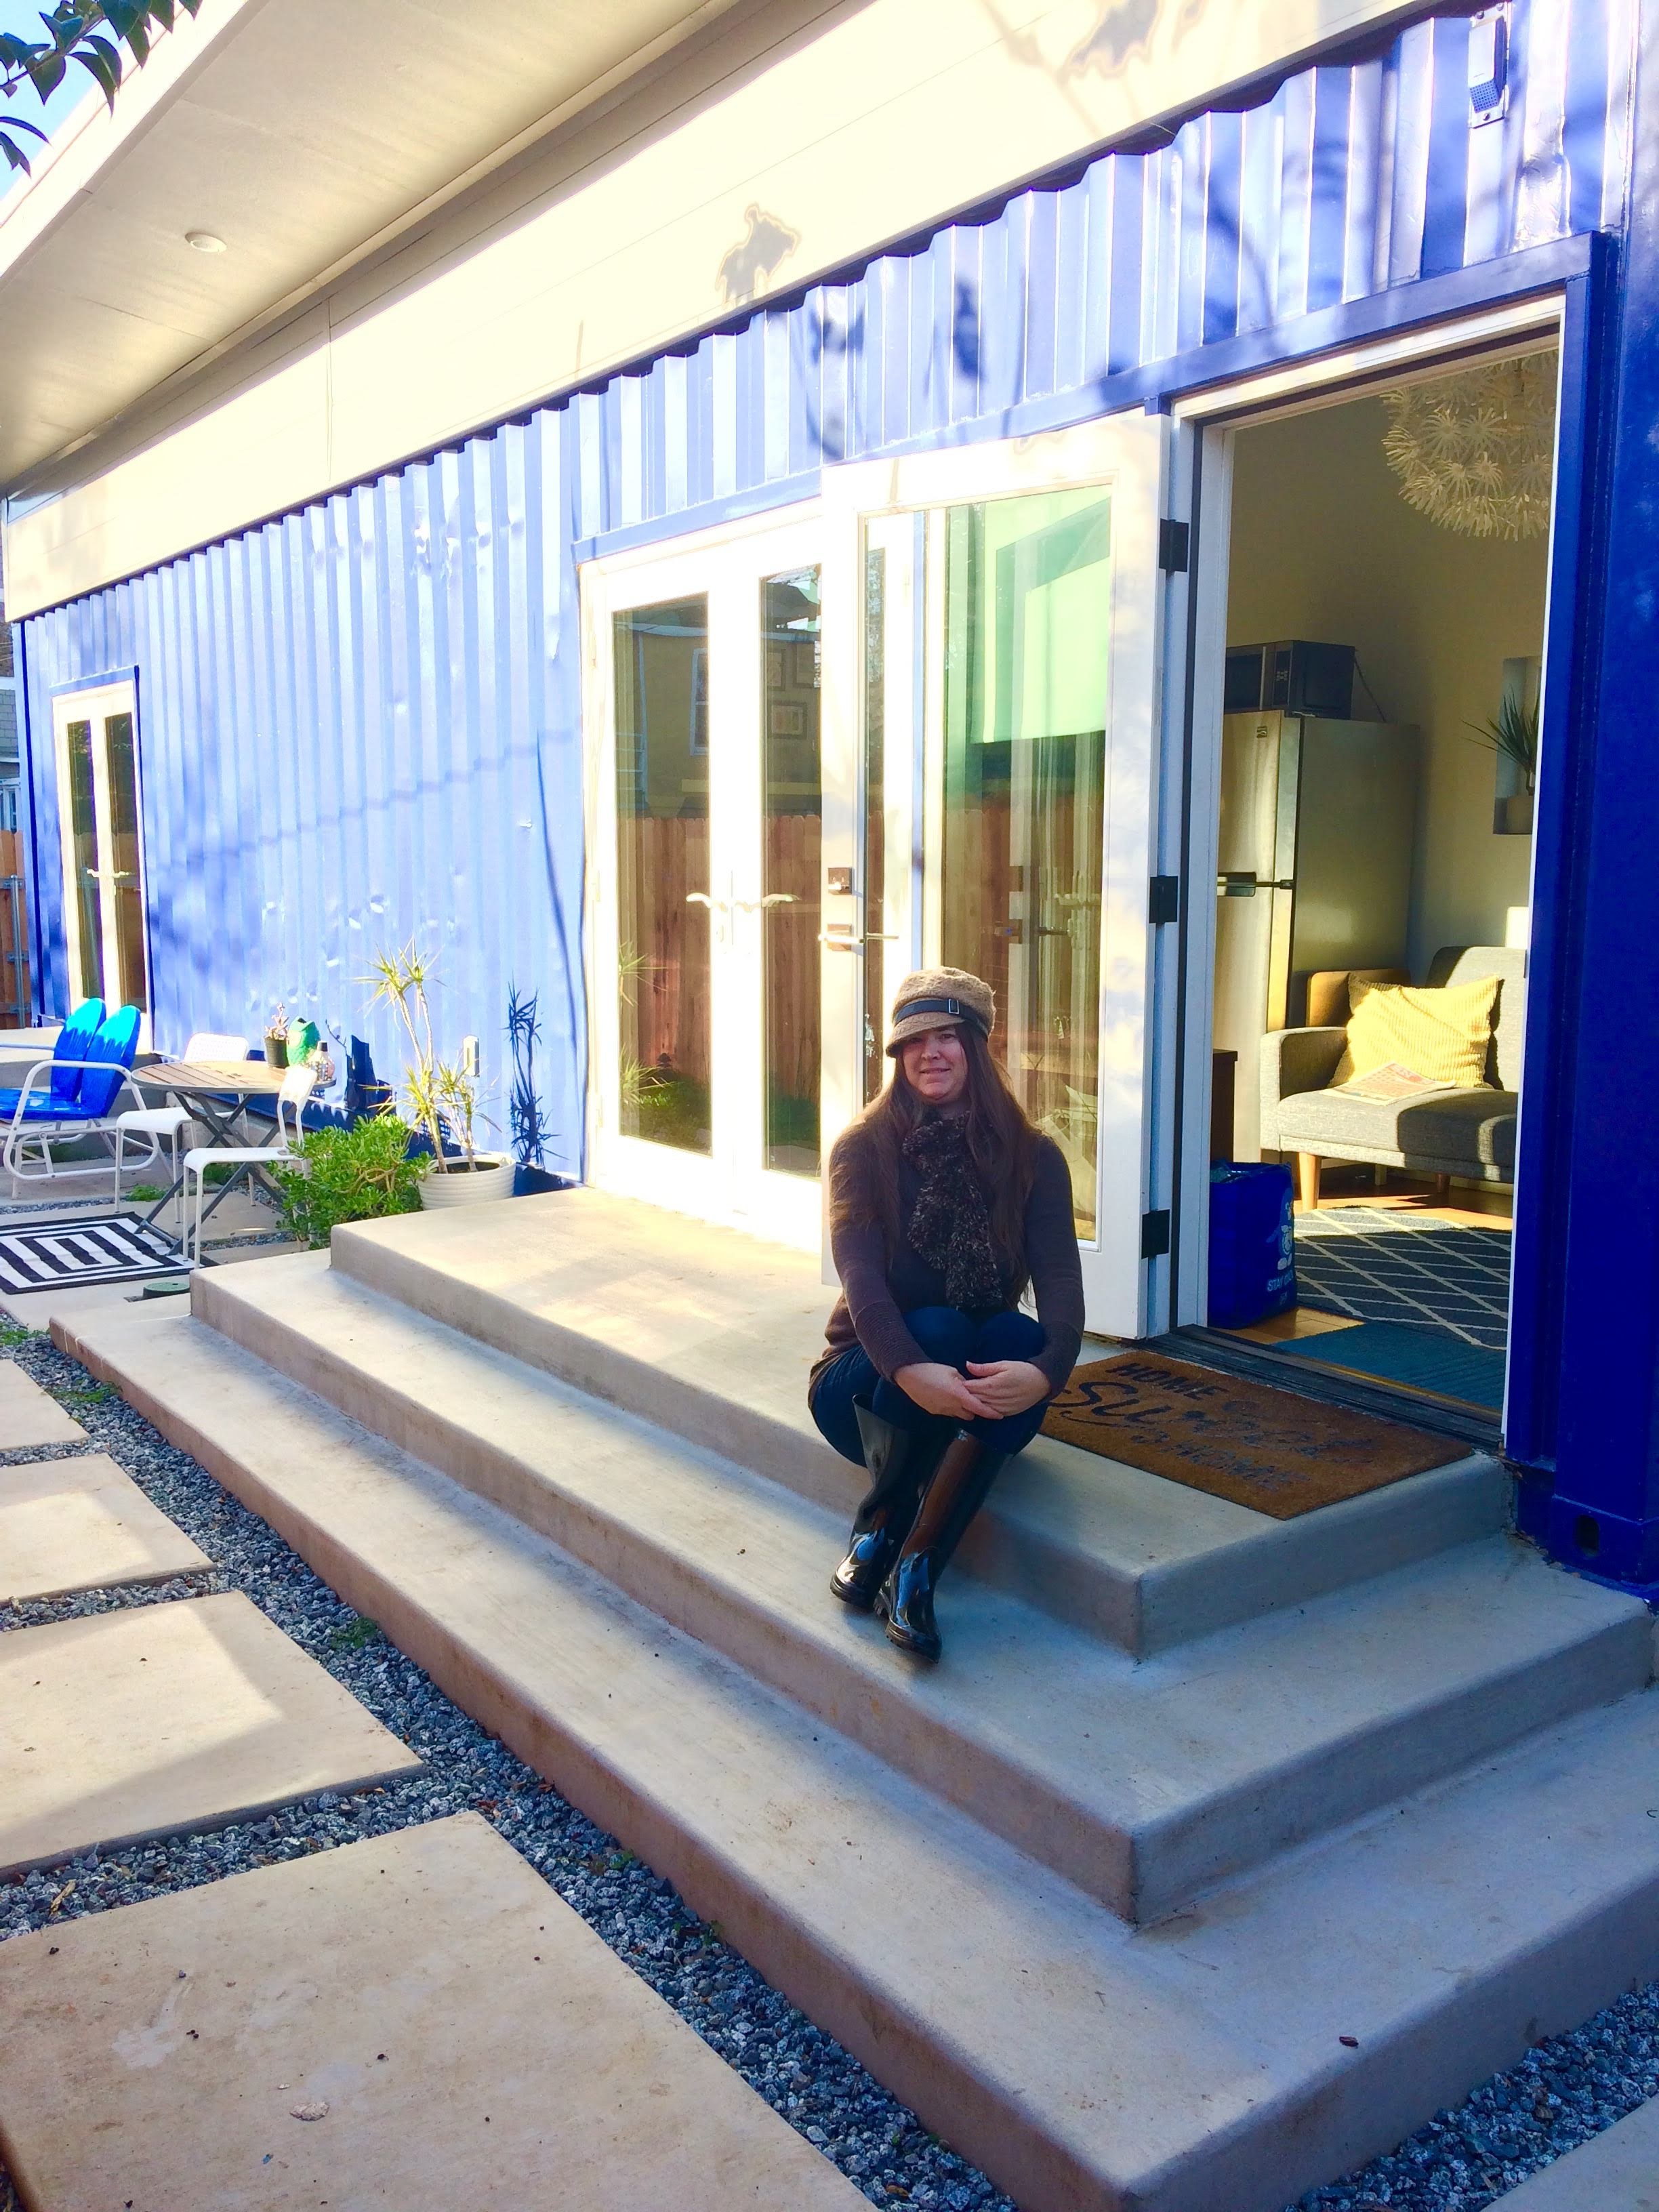 tiny travel chick indoor things to do in sacramento container home airbnb